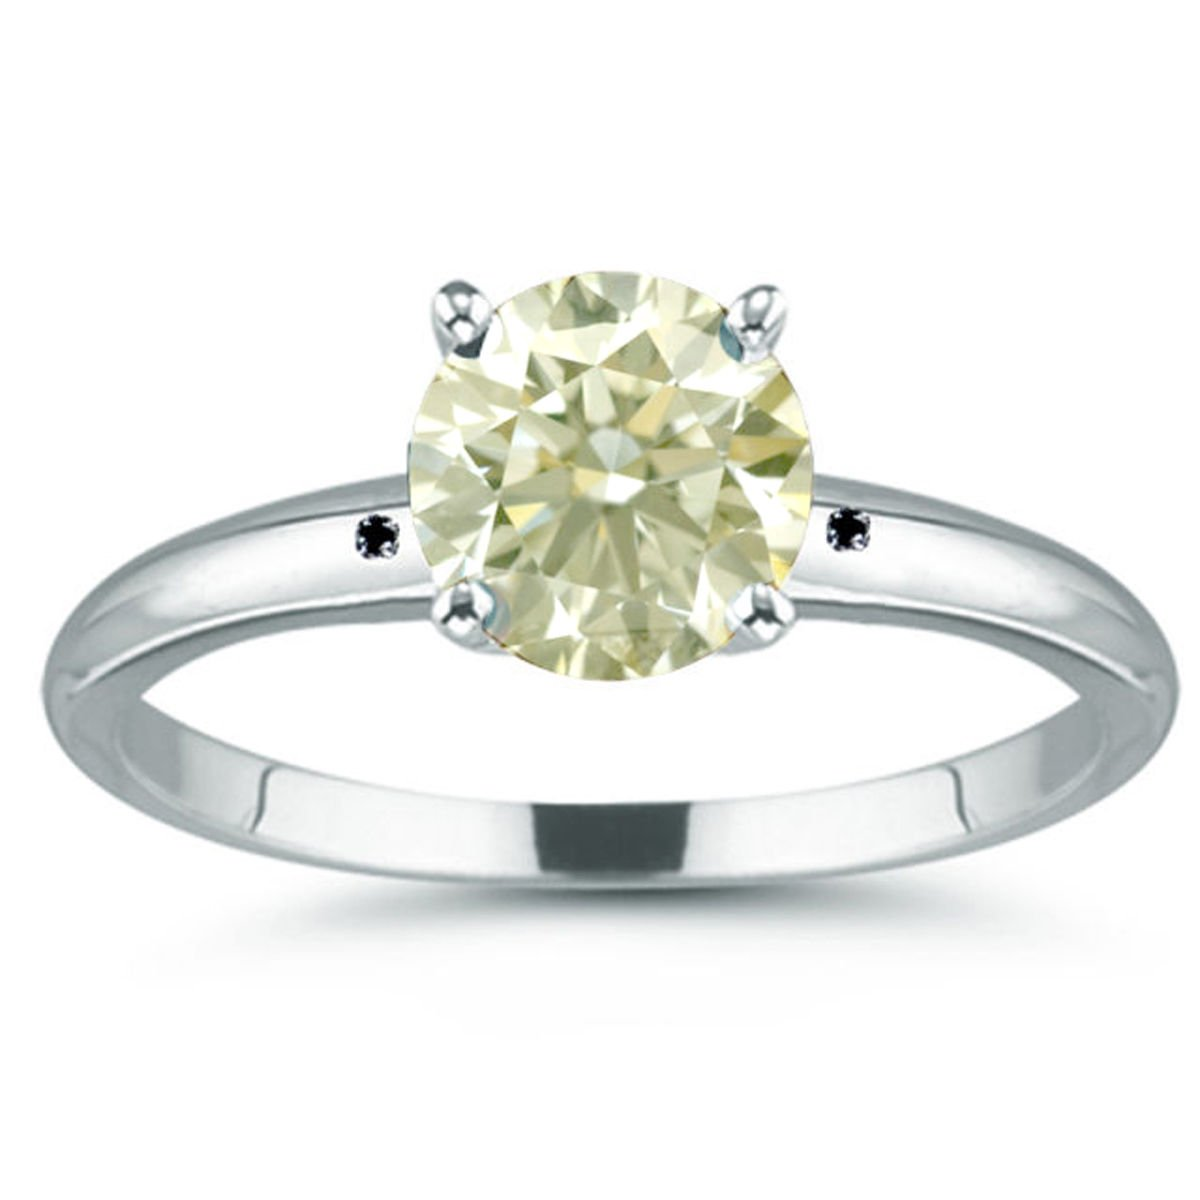 RINGJEWEL 3.68 ct SI2 Round Moissanite Solitaire Silver Plated Engagement Ring Off White Color Size 7